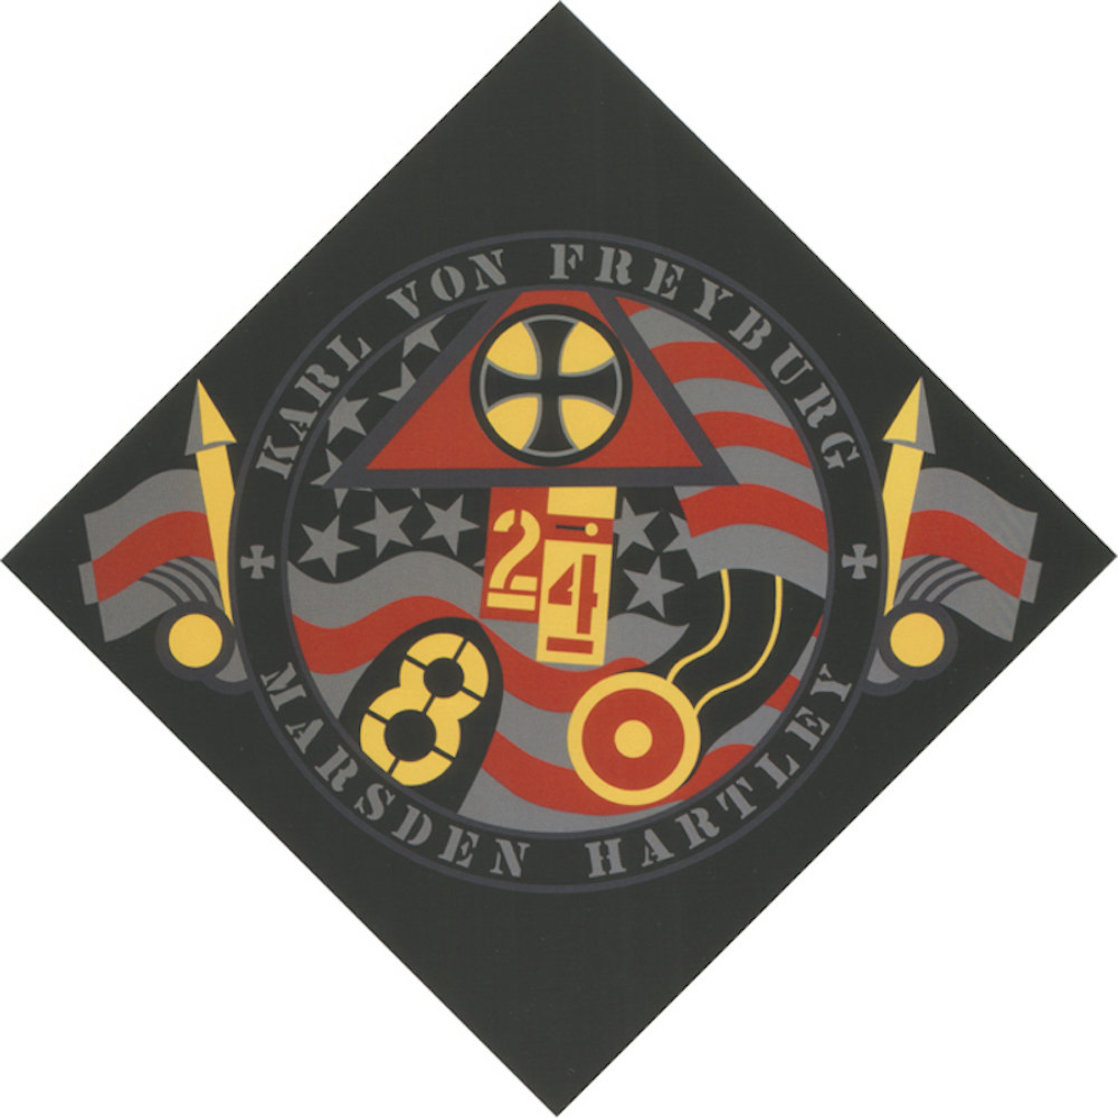 KVF VII From Hartley Elegies 1990 Limited Edition Print by Robert Indiana